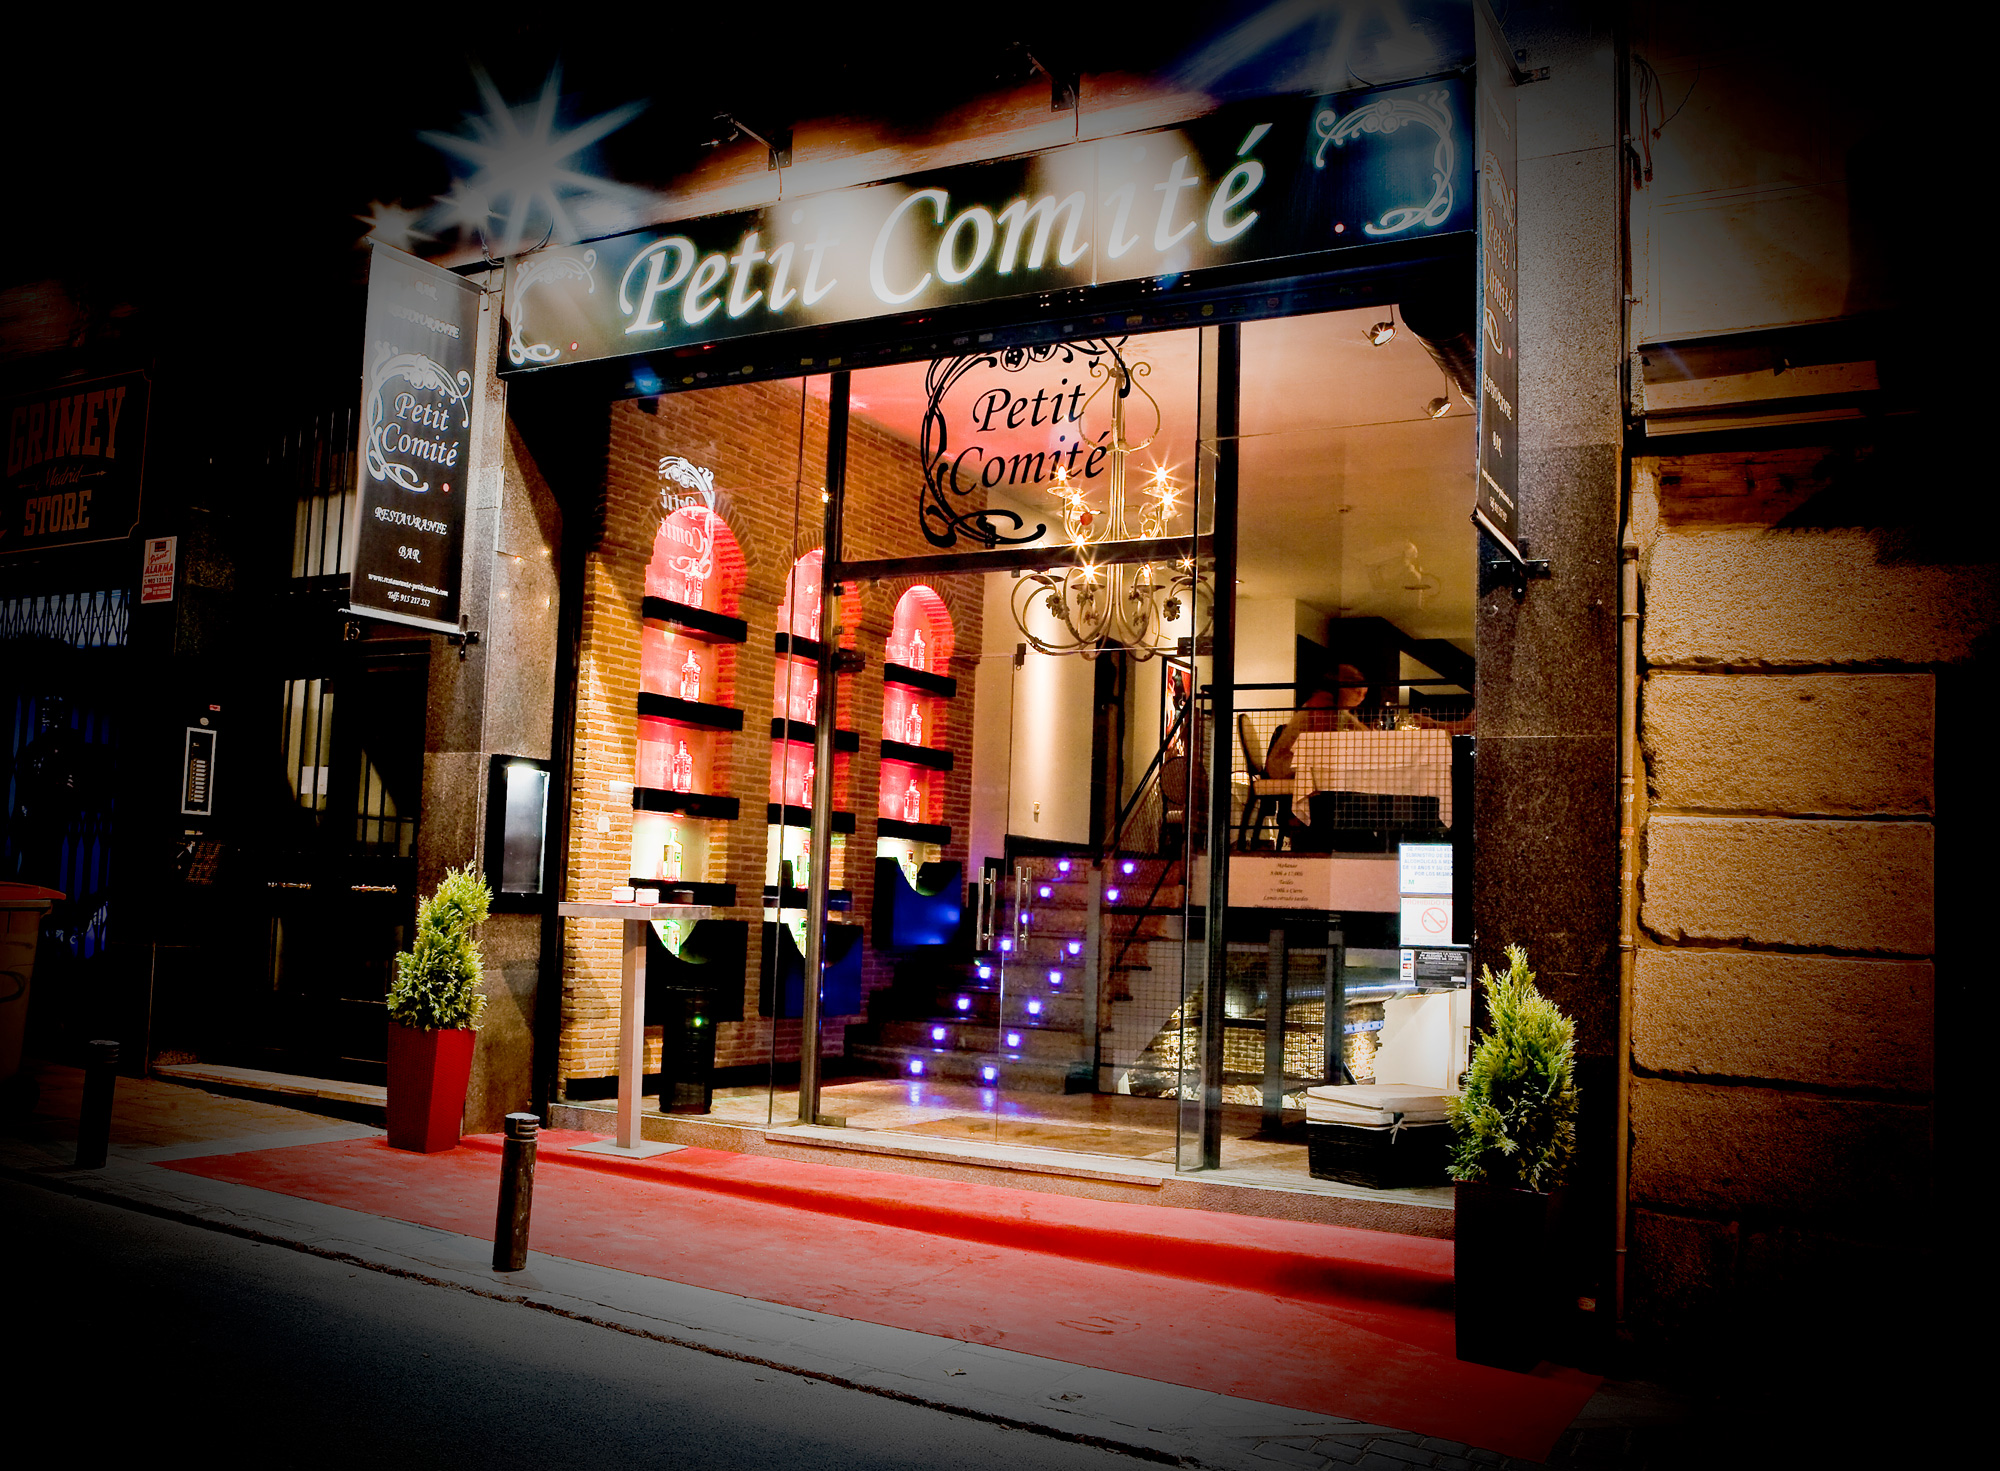 Petit comit restaurant events and guide barcelona home for Petit restaurant